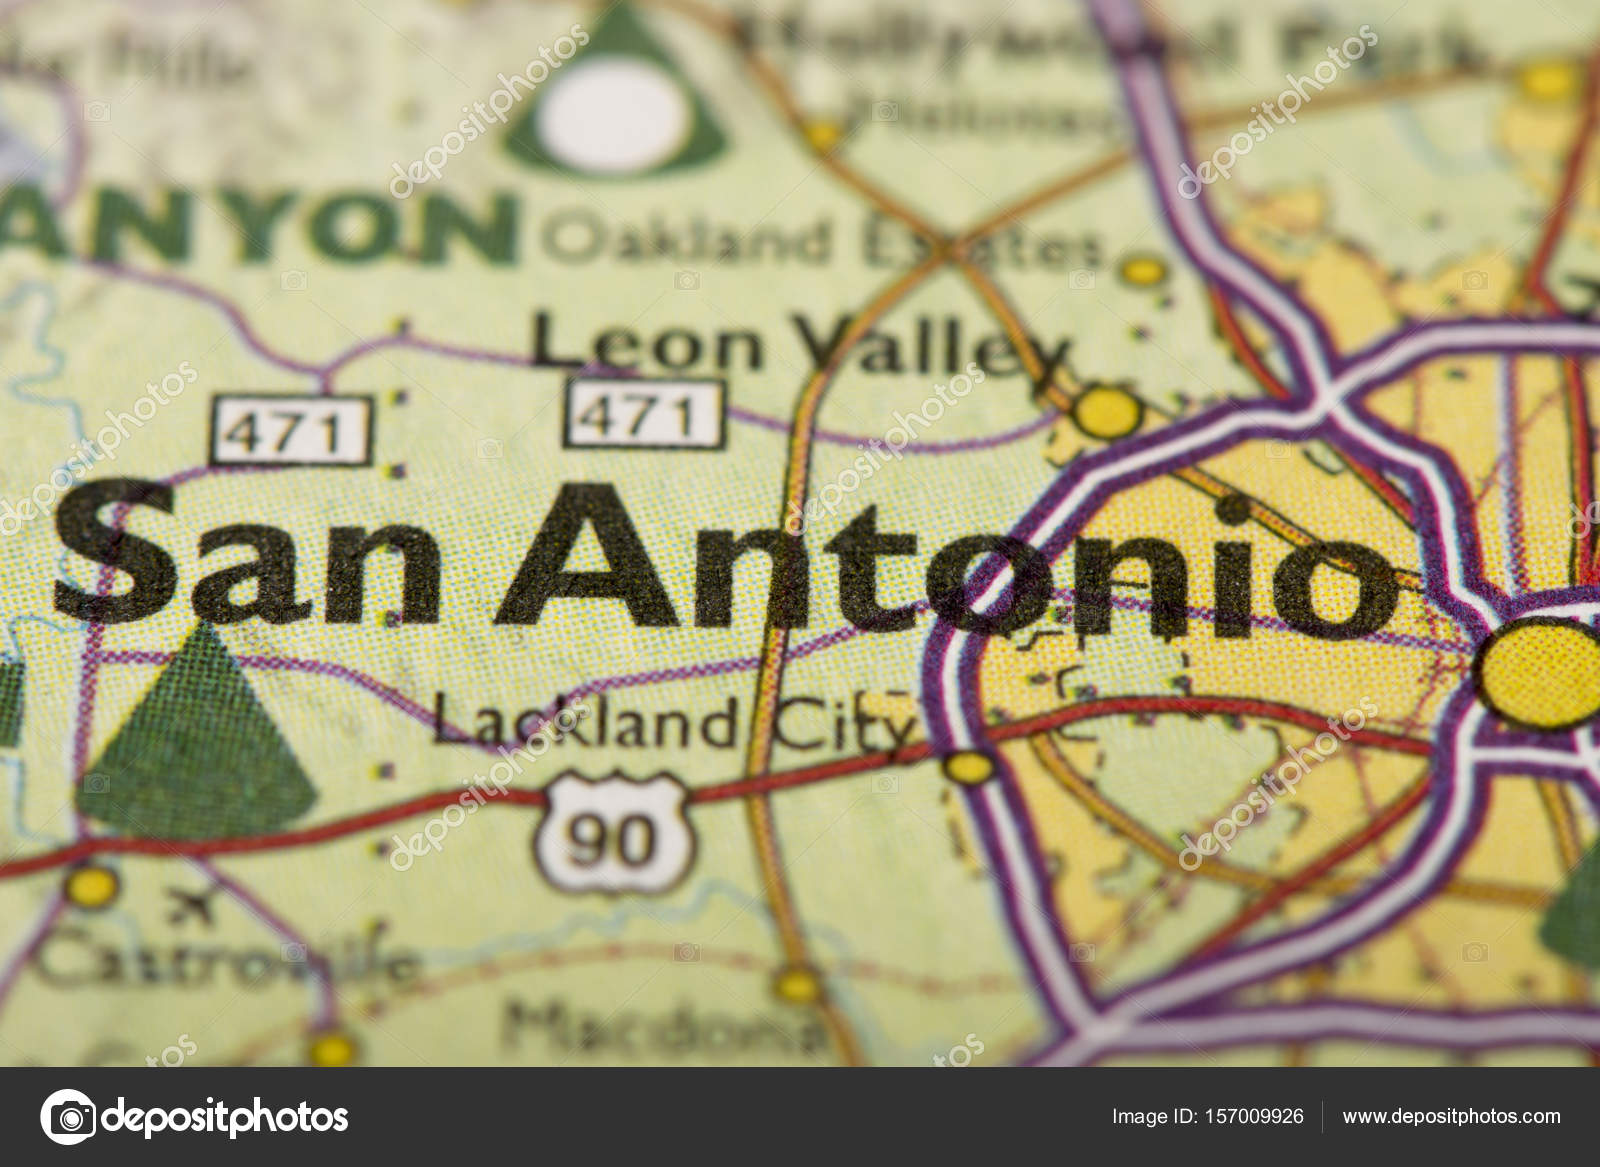 San Antonio on map — Stock Photo © icemanj #157009926 on texas on map, kansas city on map, leon county on map, bexar county on map, corpus christi on map, la venta on map, commerce city on map, quad cities on map, houston on map, white plains on map, portland on us map, new orleans on map, webster on map, st john's on map, palo pinto county on map, auburn hills on map, abilene on map, south bend on map, golden state on map, plano on map,